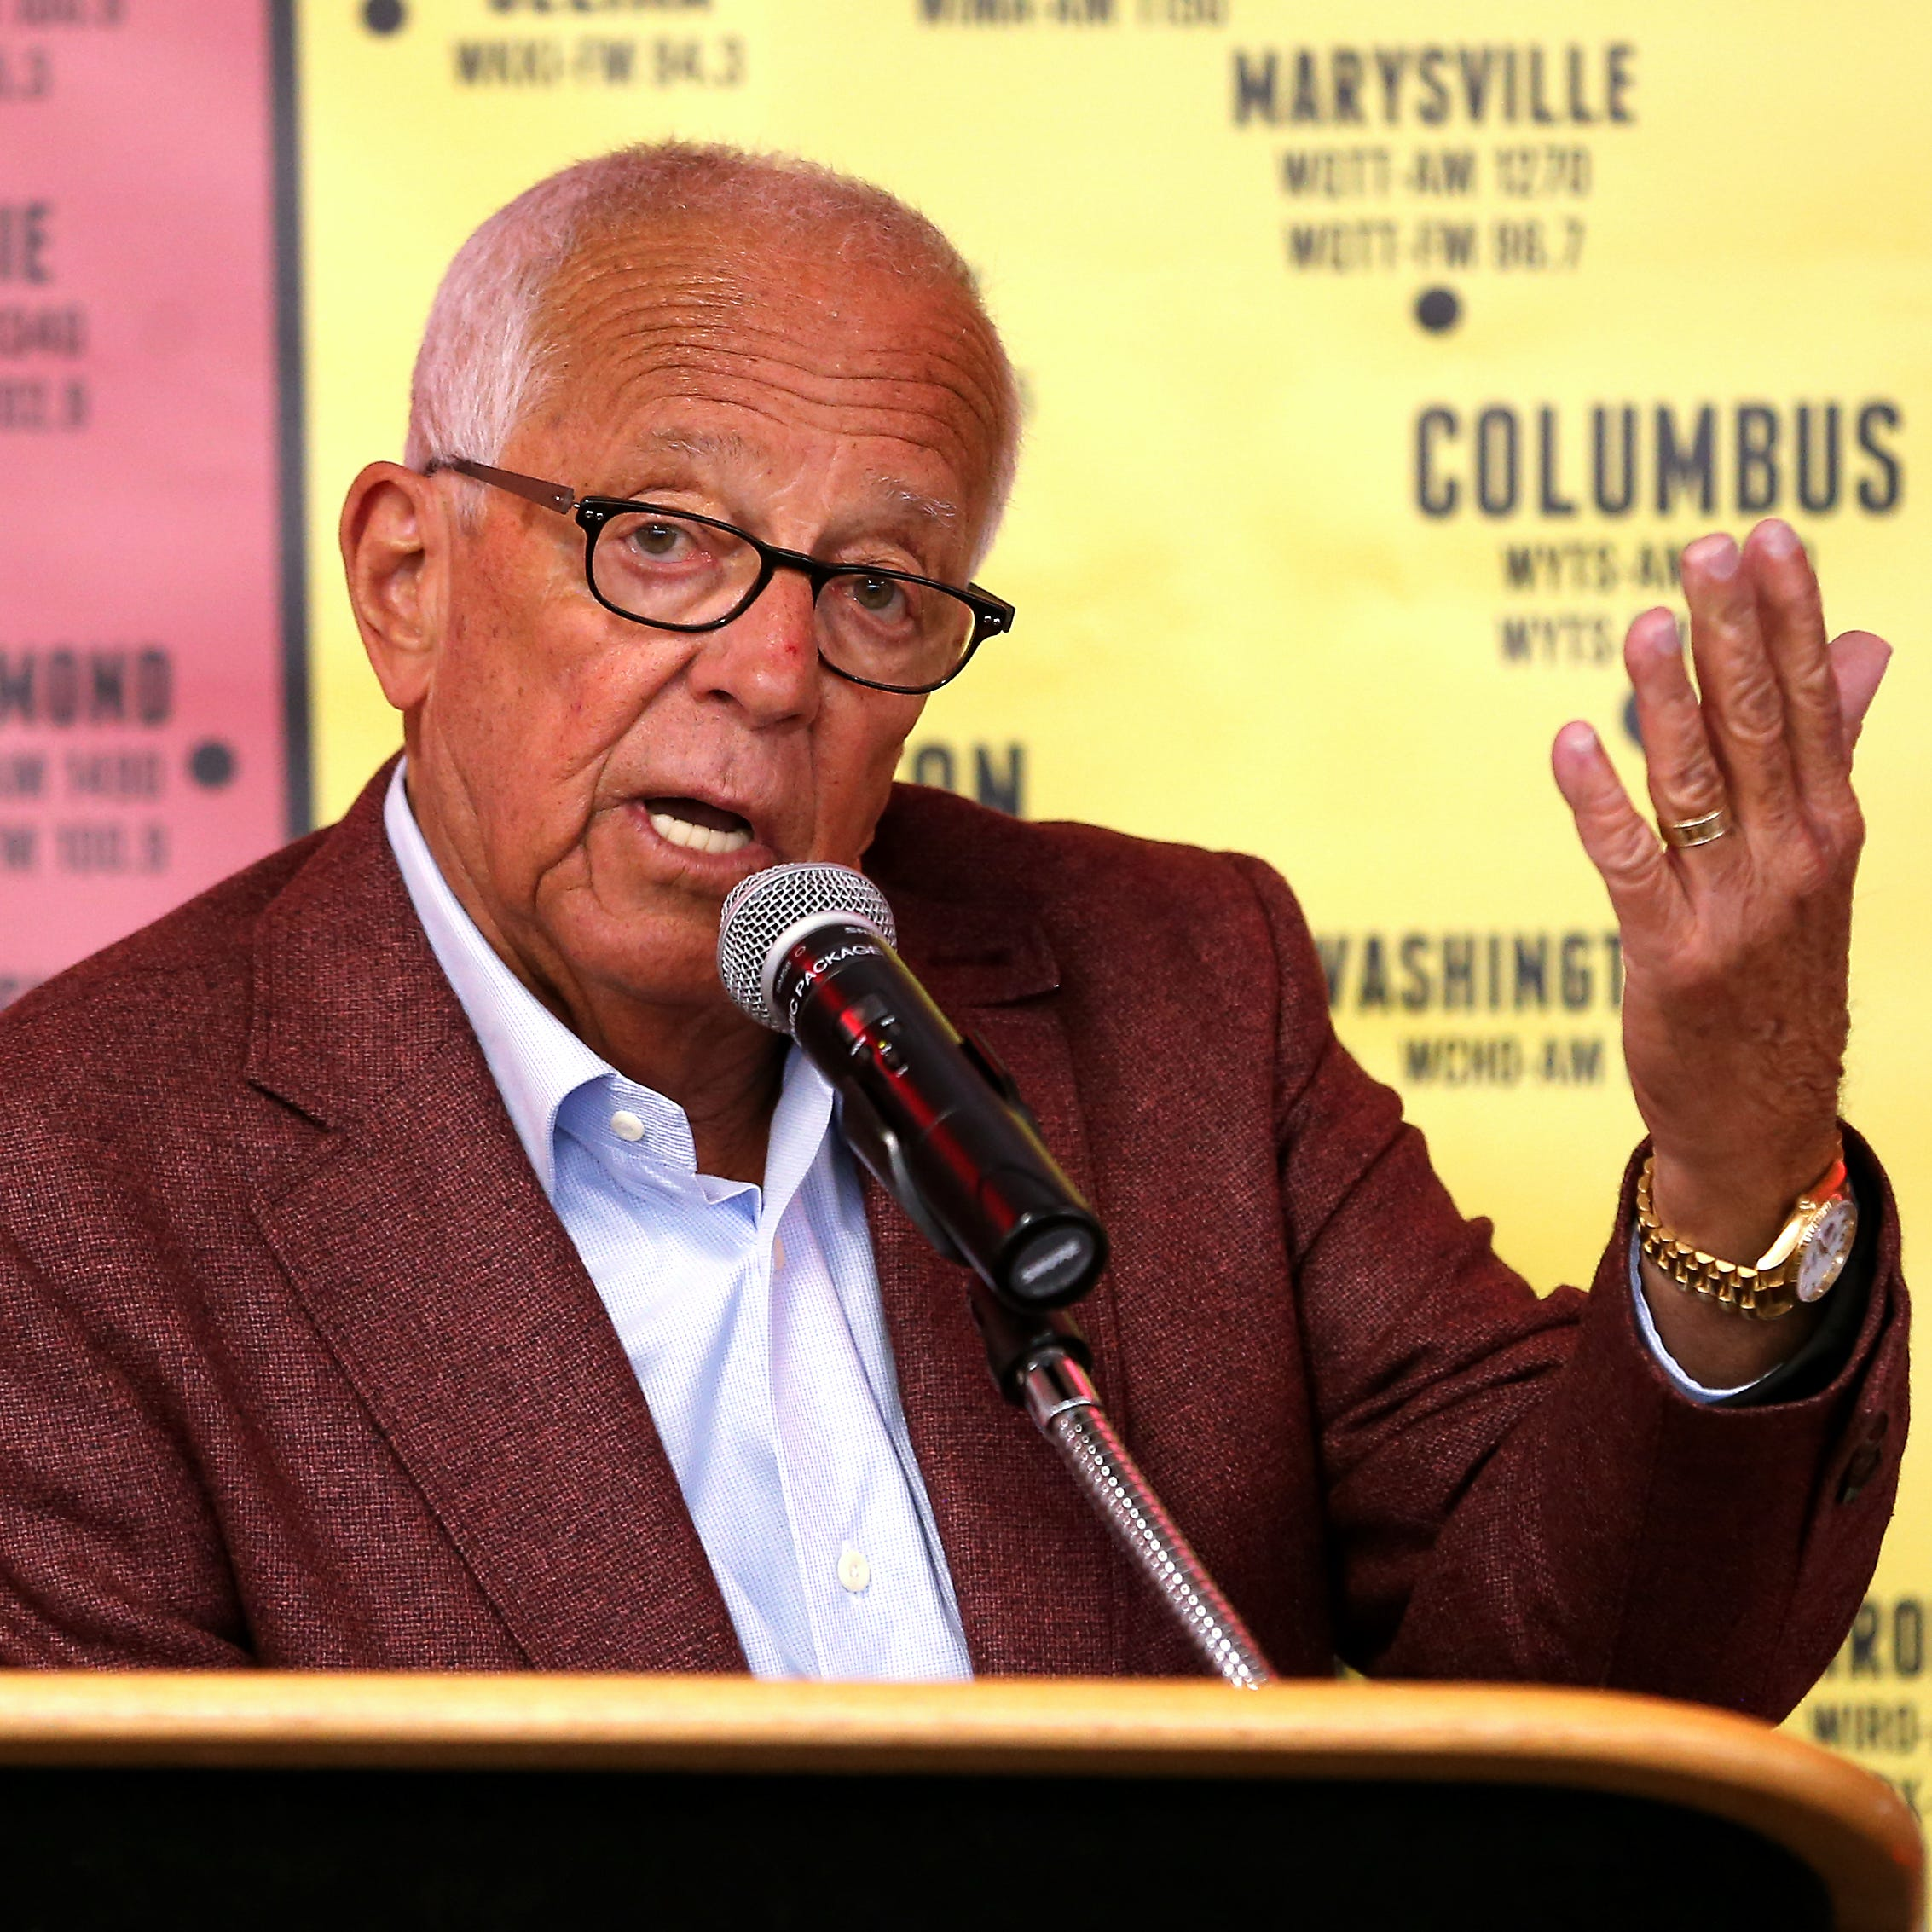 Cincinnati Reds play-by-play broadcaster Marty...